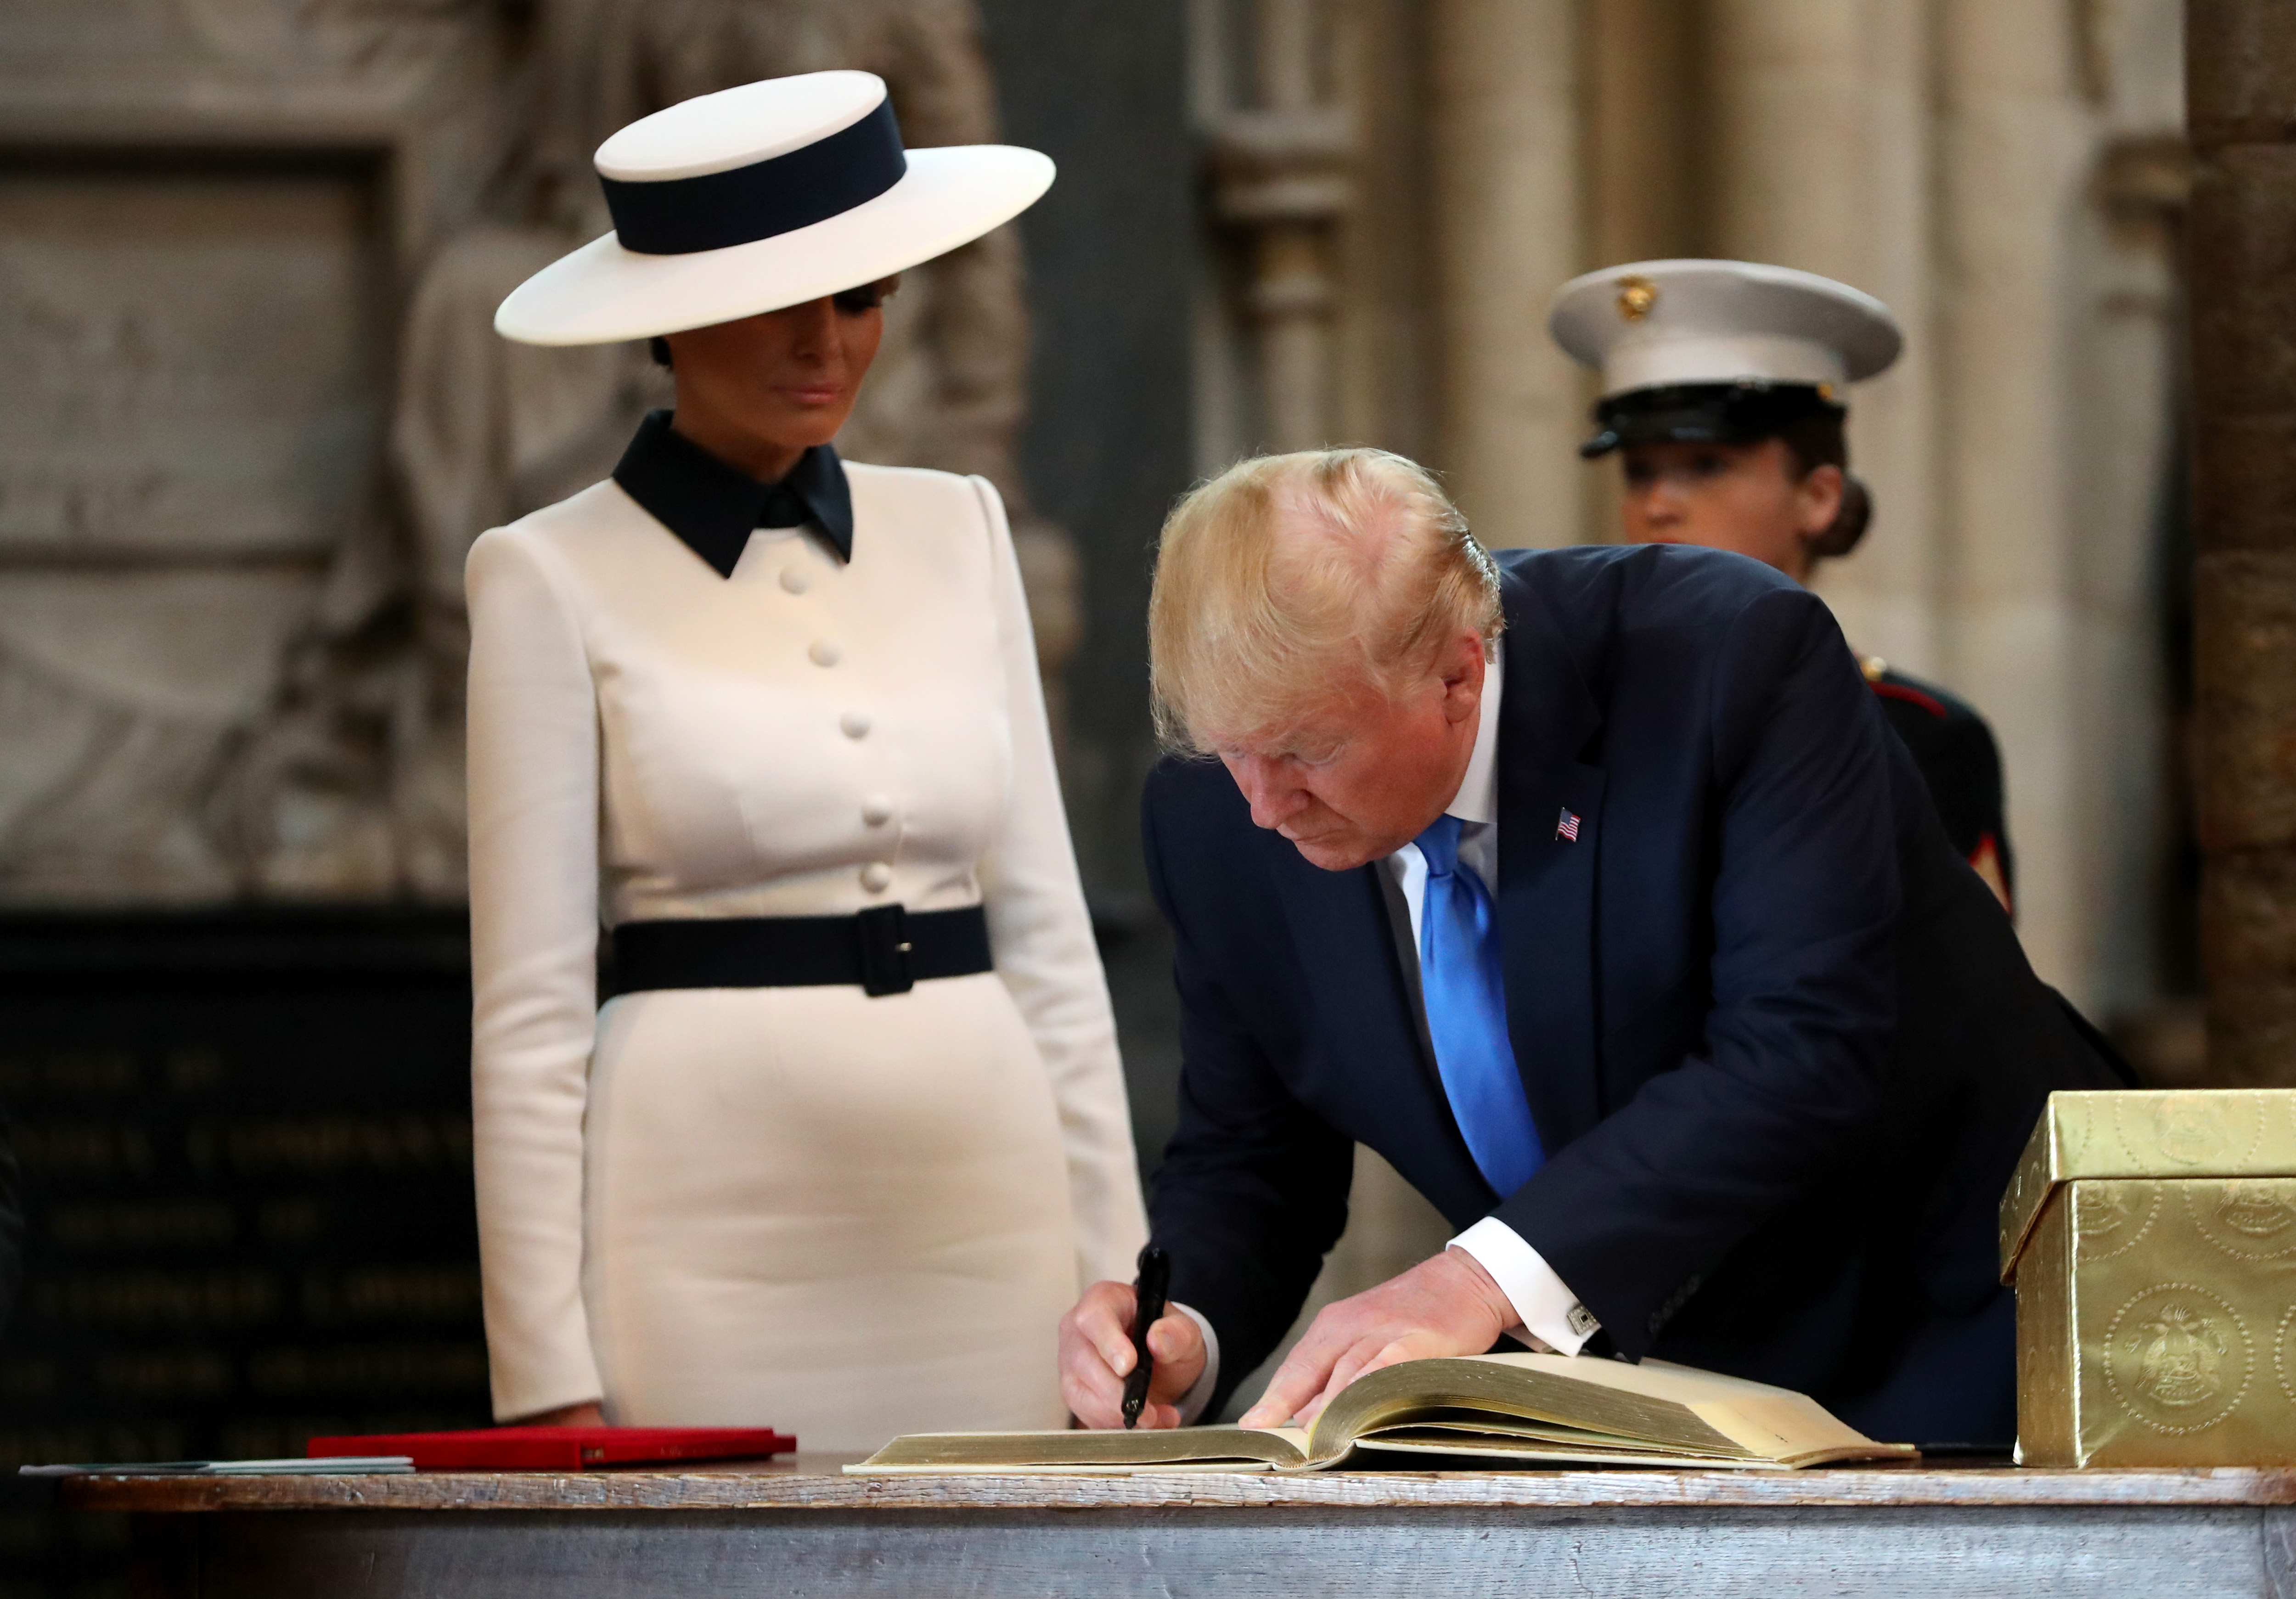 Trump signs the visitors book during the visit to Westminster Abbey with First Lady Melania Trump on Monday in London.